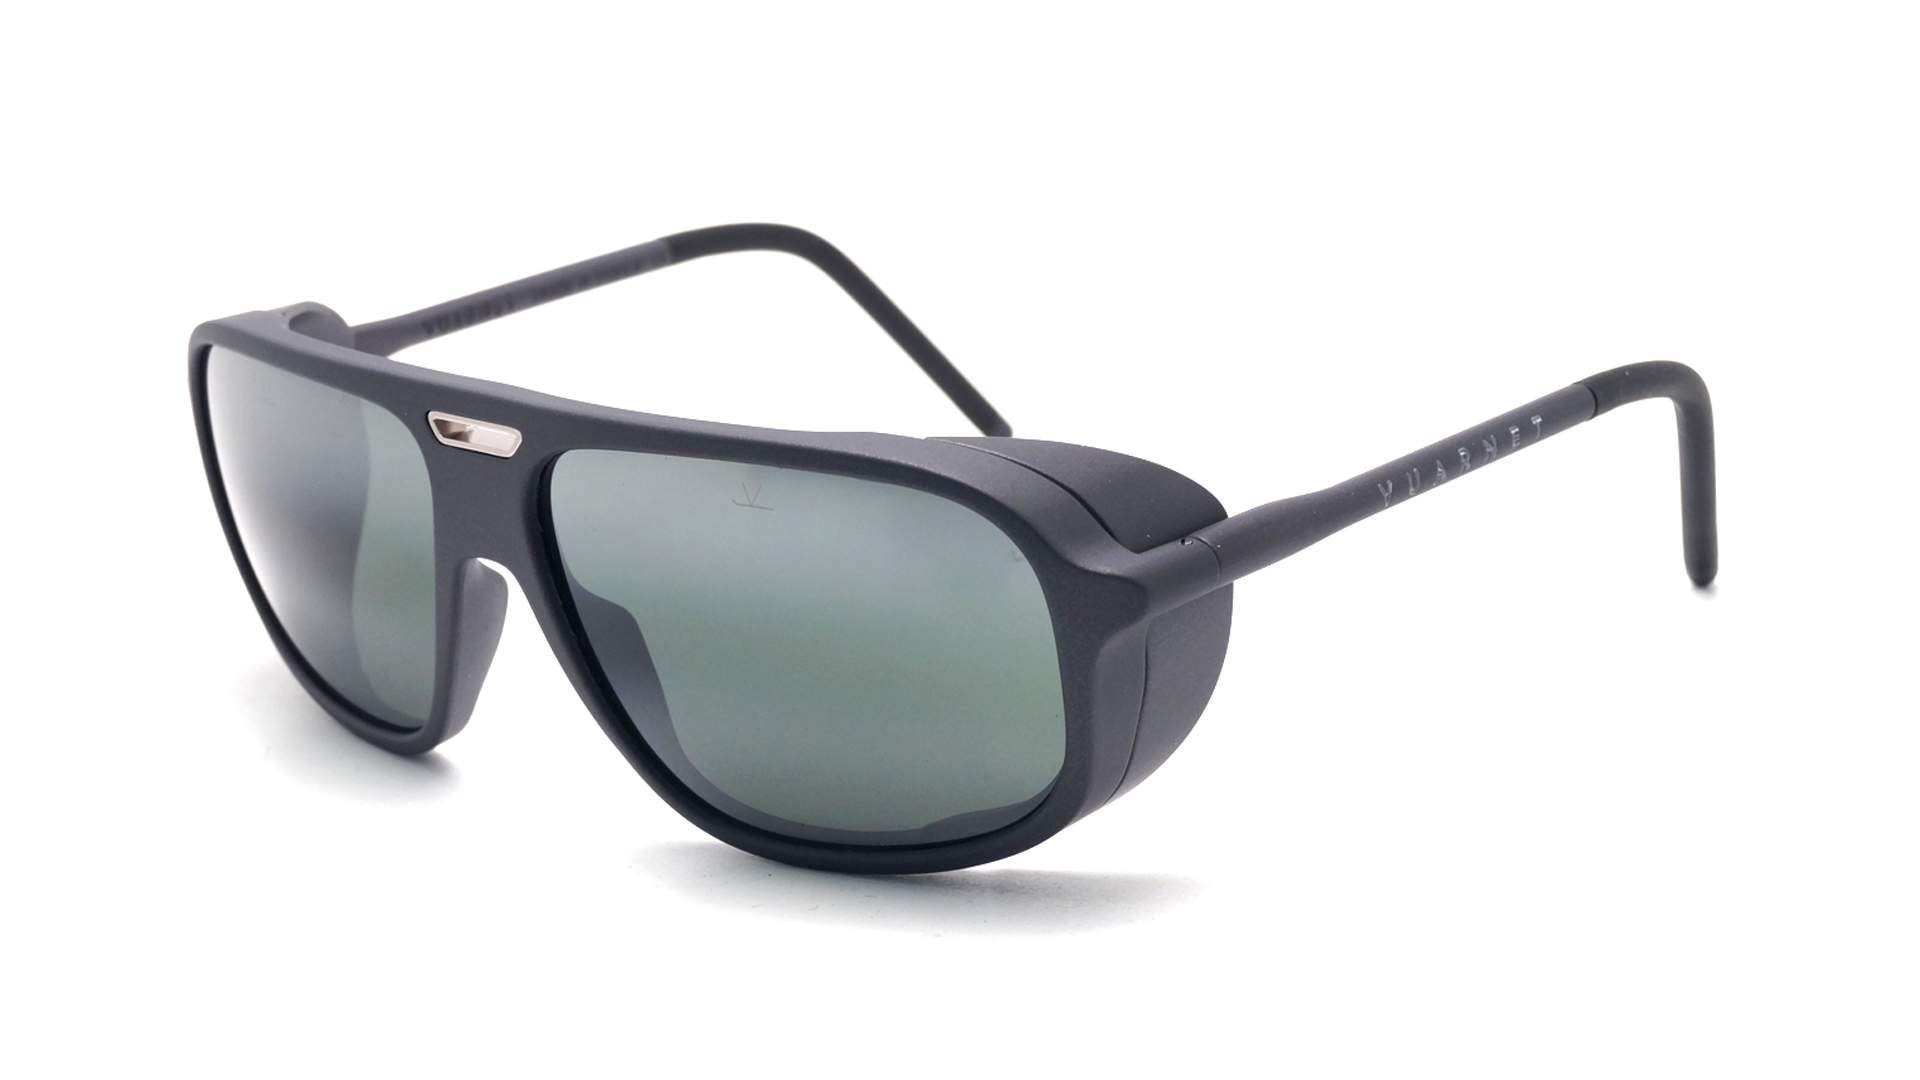 3dbfd4e727e Sunglasses Vuarnet Ice Grey Matte Greylynx VL1811 0004 60-15 Large Gradient  Mirror